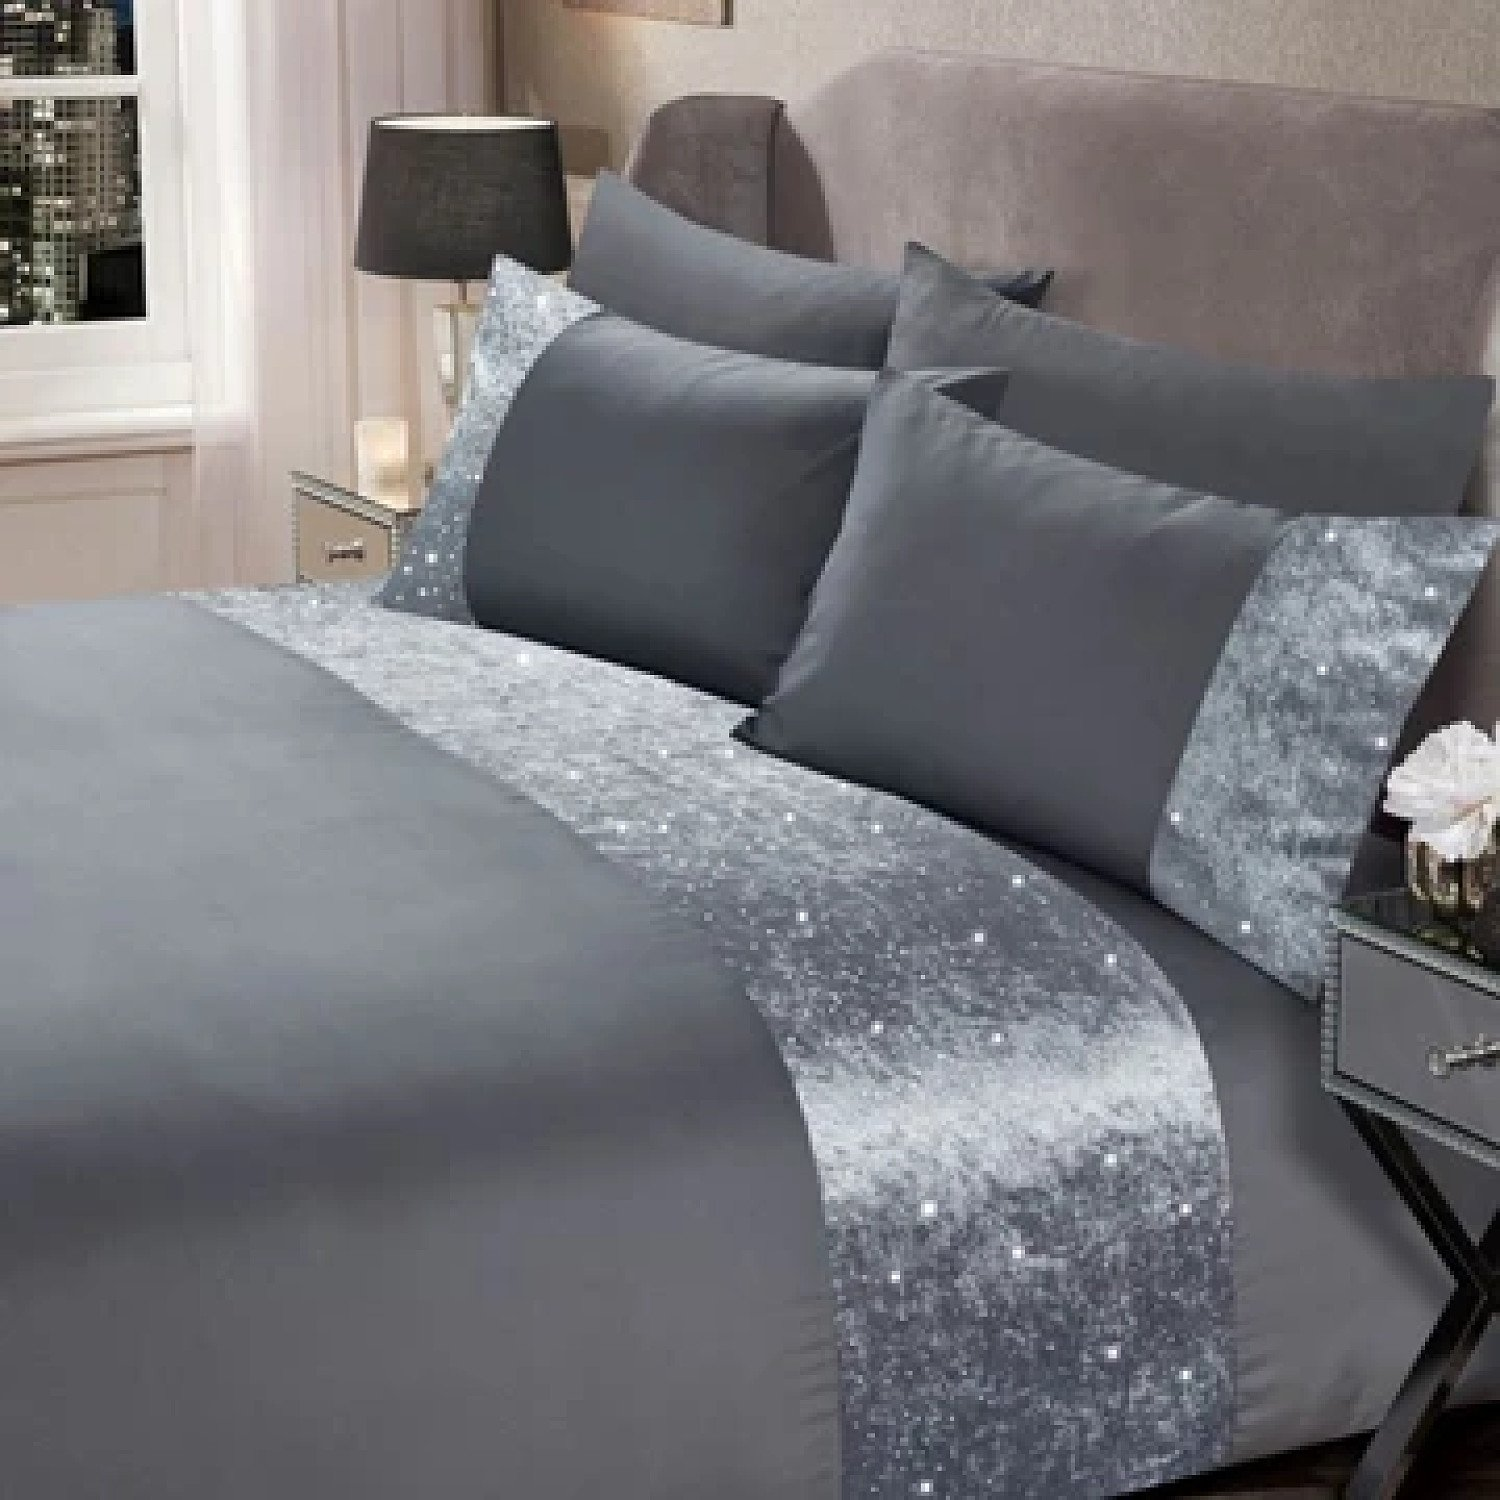 Sienna Crushed Velvet Duvet Cover Set